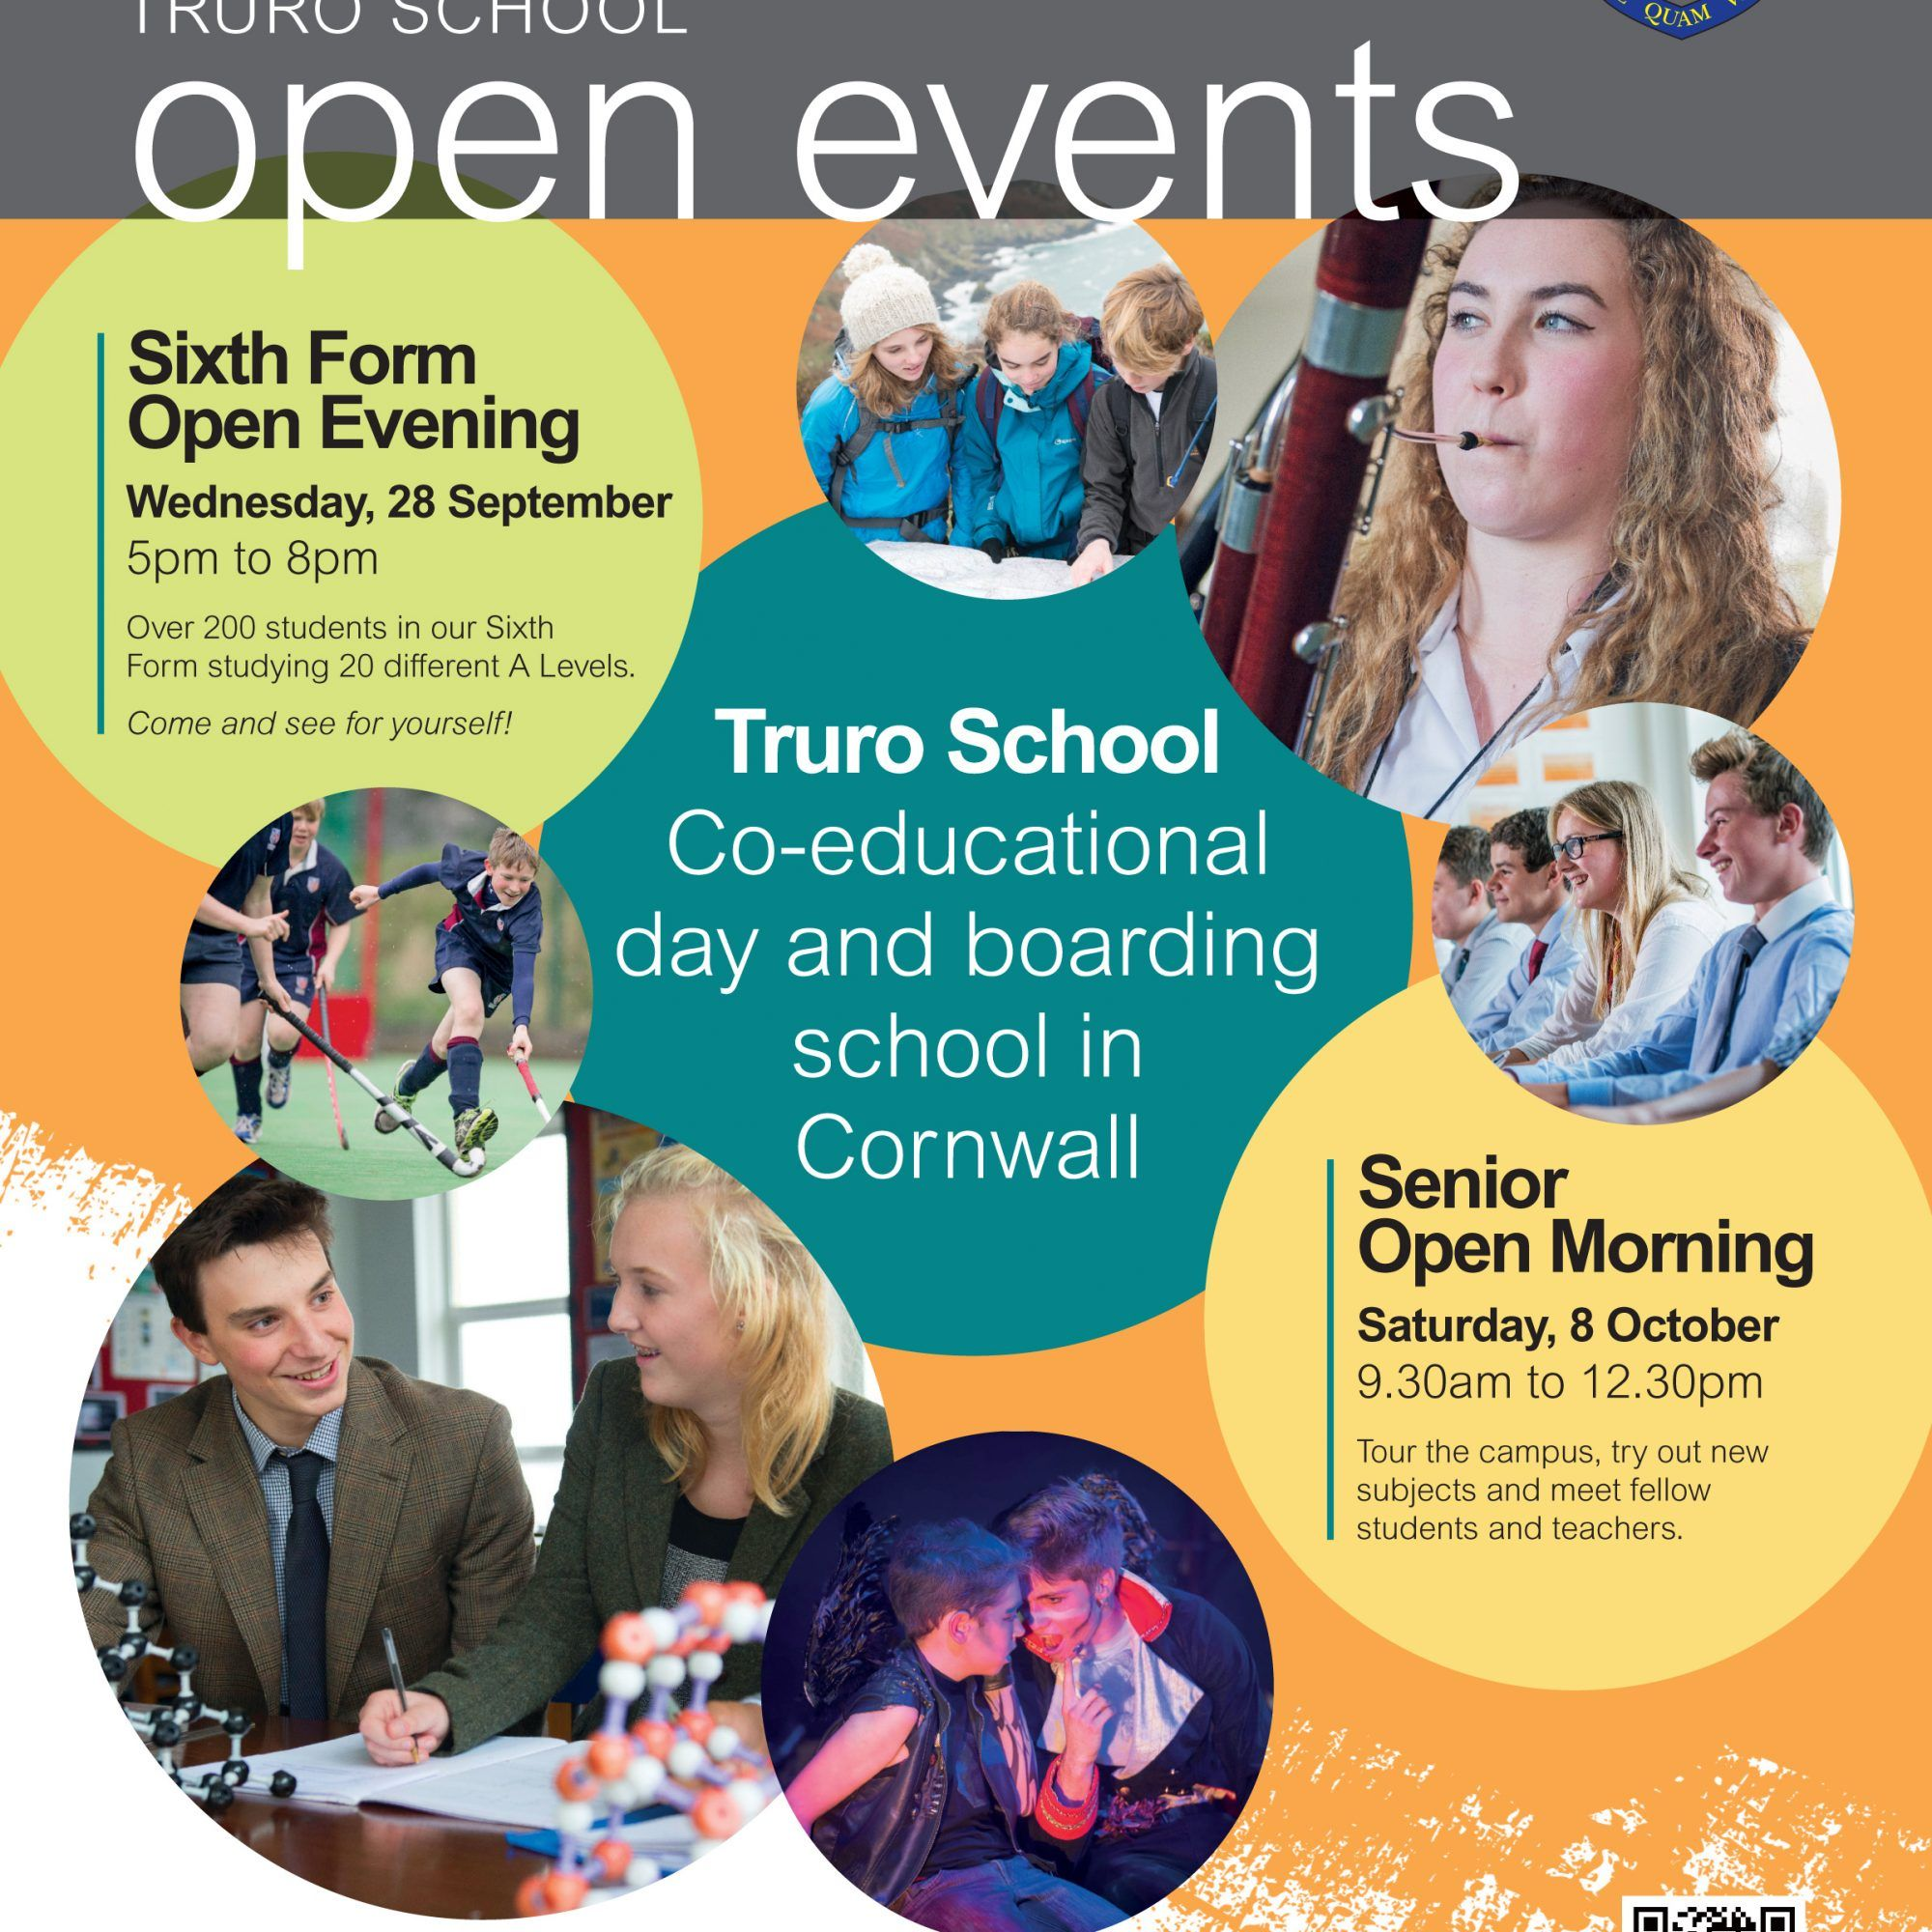 Open Events Truro School 2016, Cornwall, UK